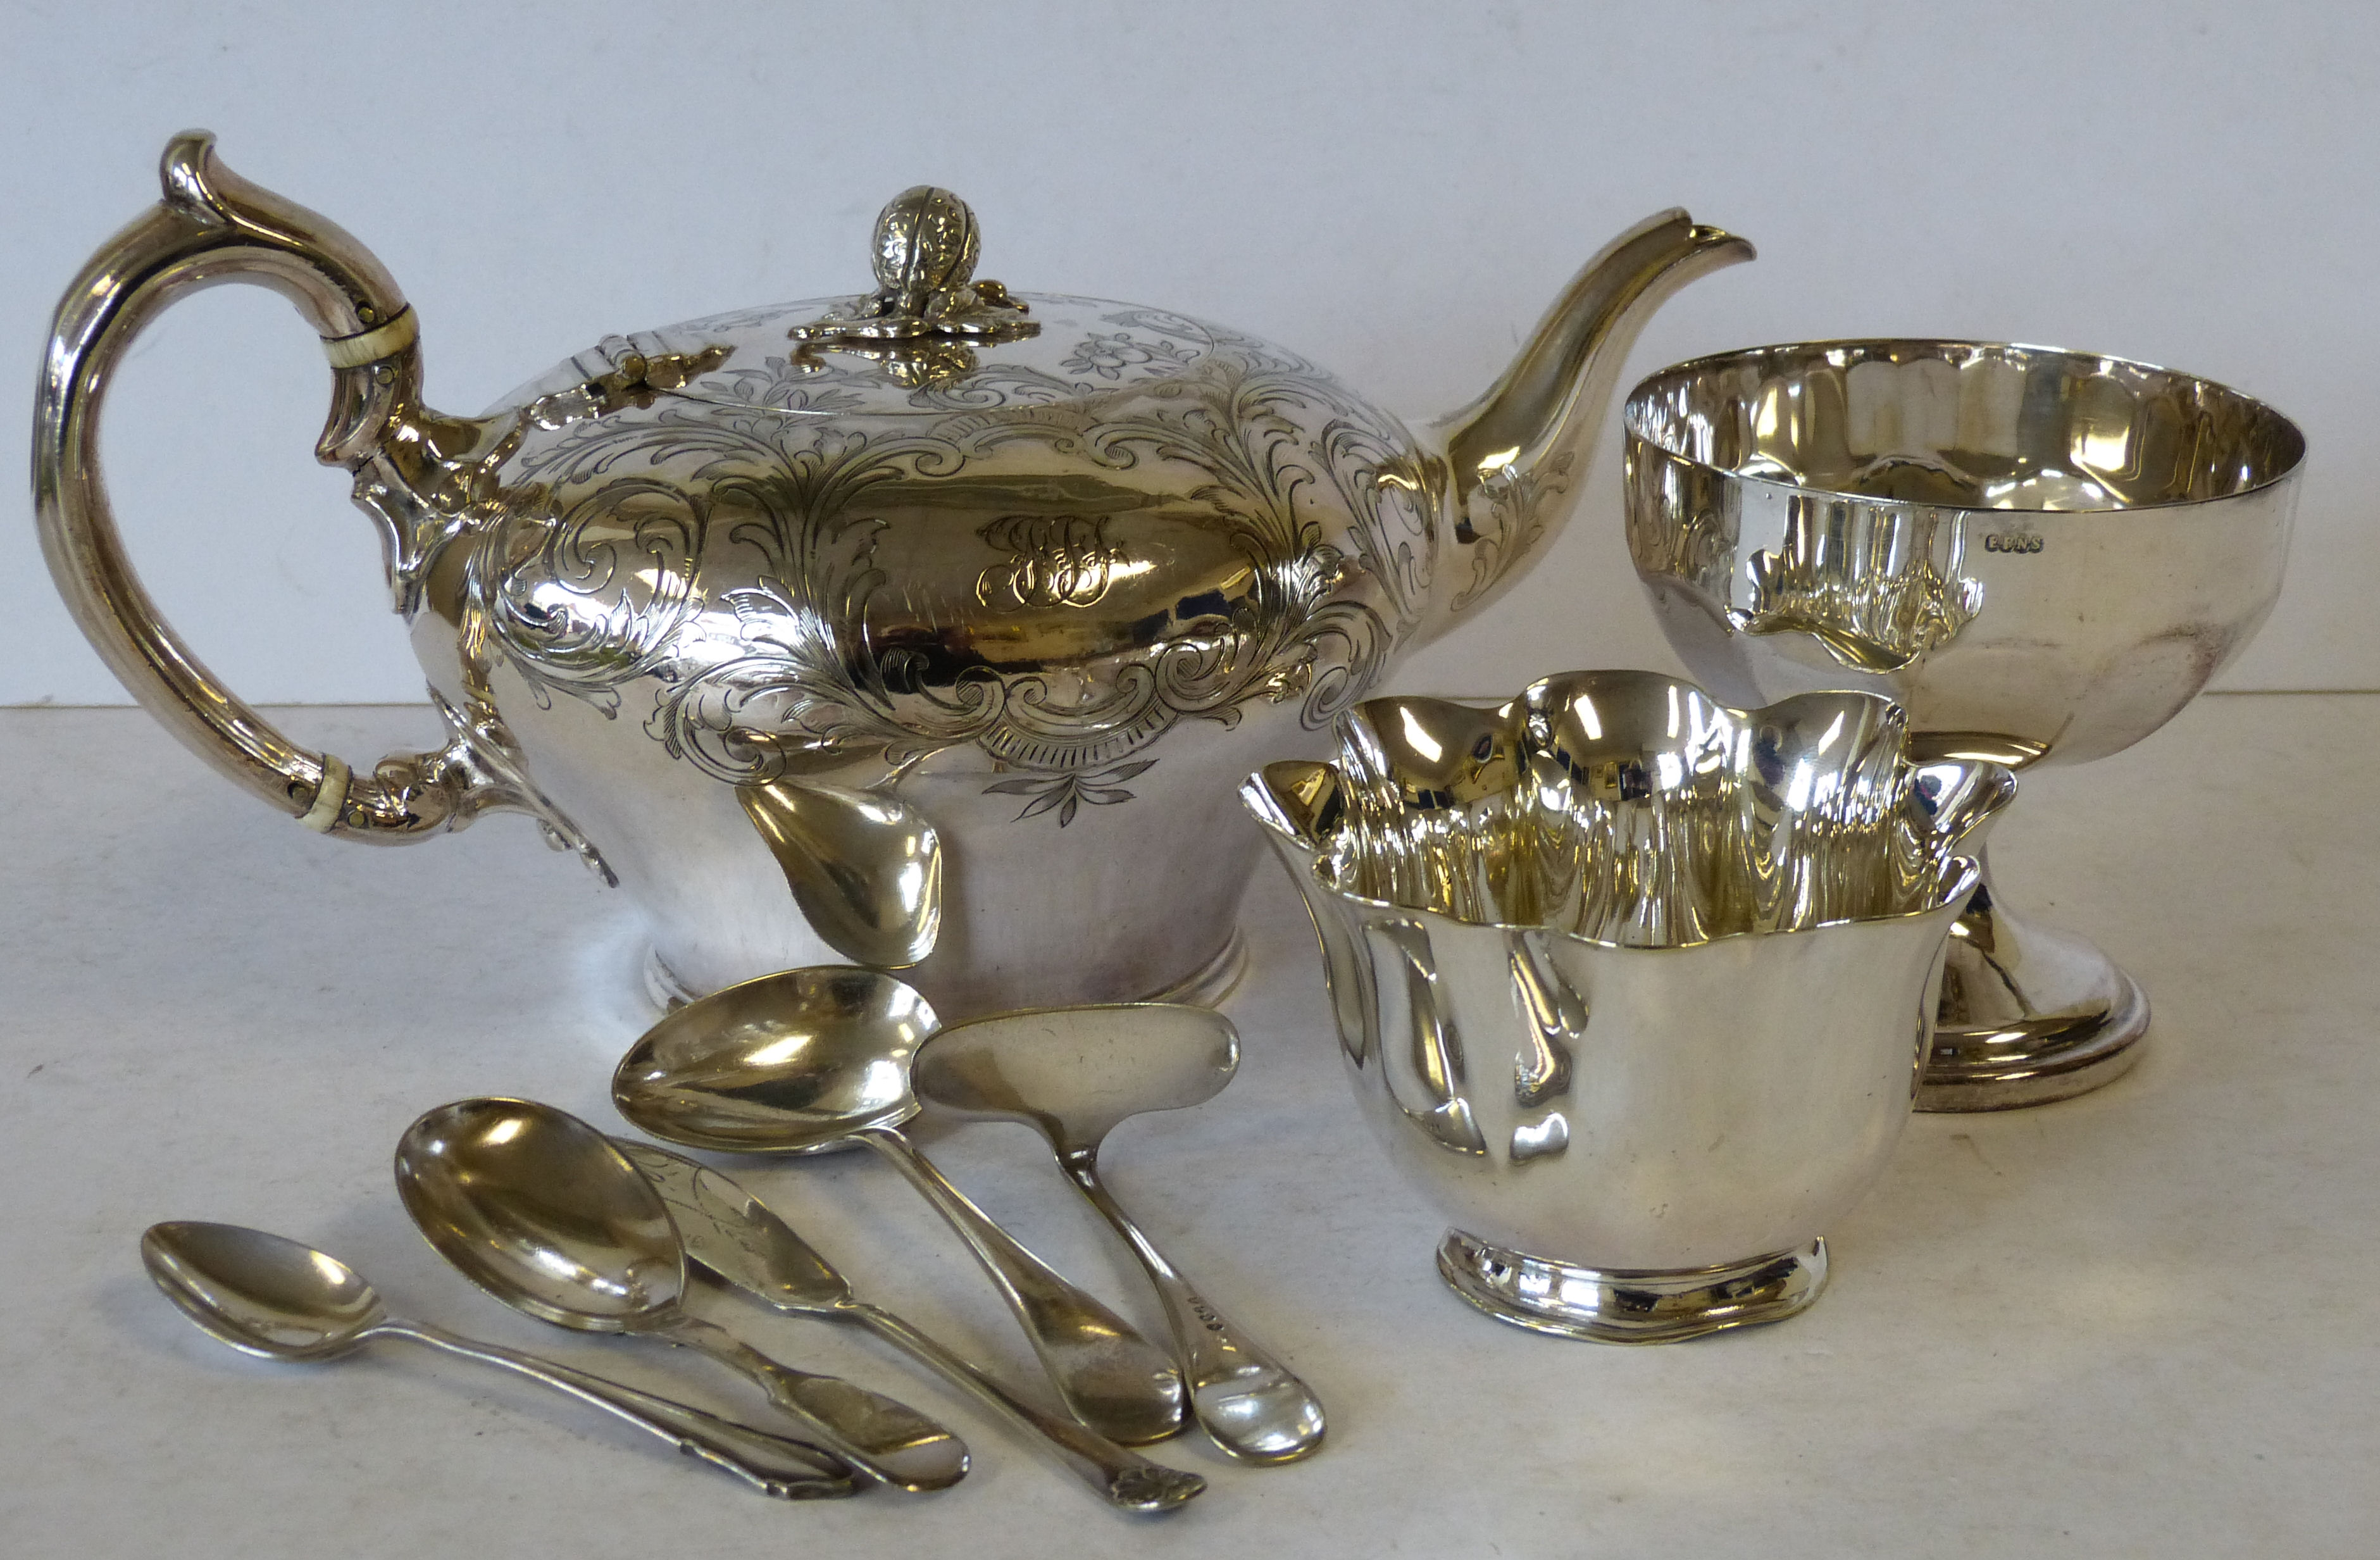 A Silver Plated Bulbous Shaped Tea Pot having engraved scroll and leaf decoration, a plated round sweetmeat dish